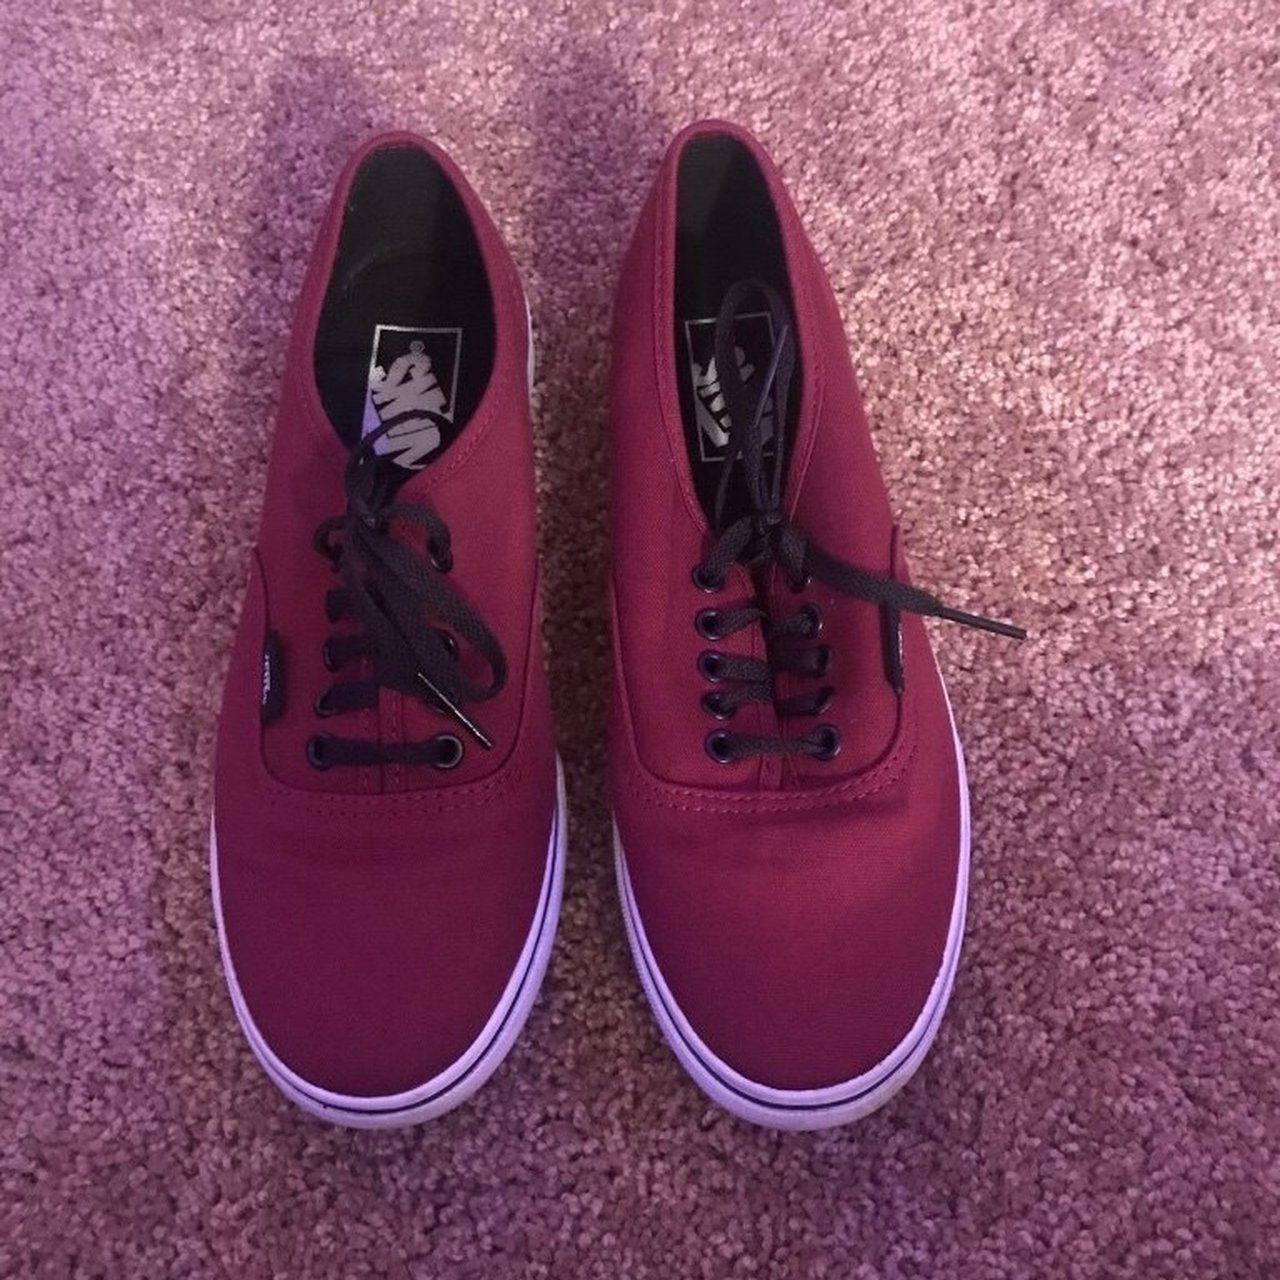 fb16574aeca4 burgundy authentic lo pro vans. great condition